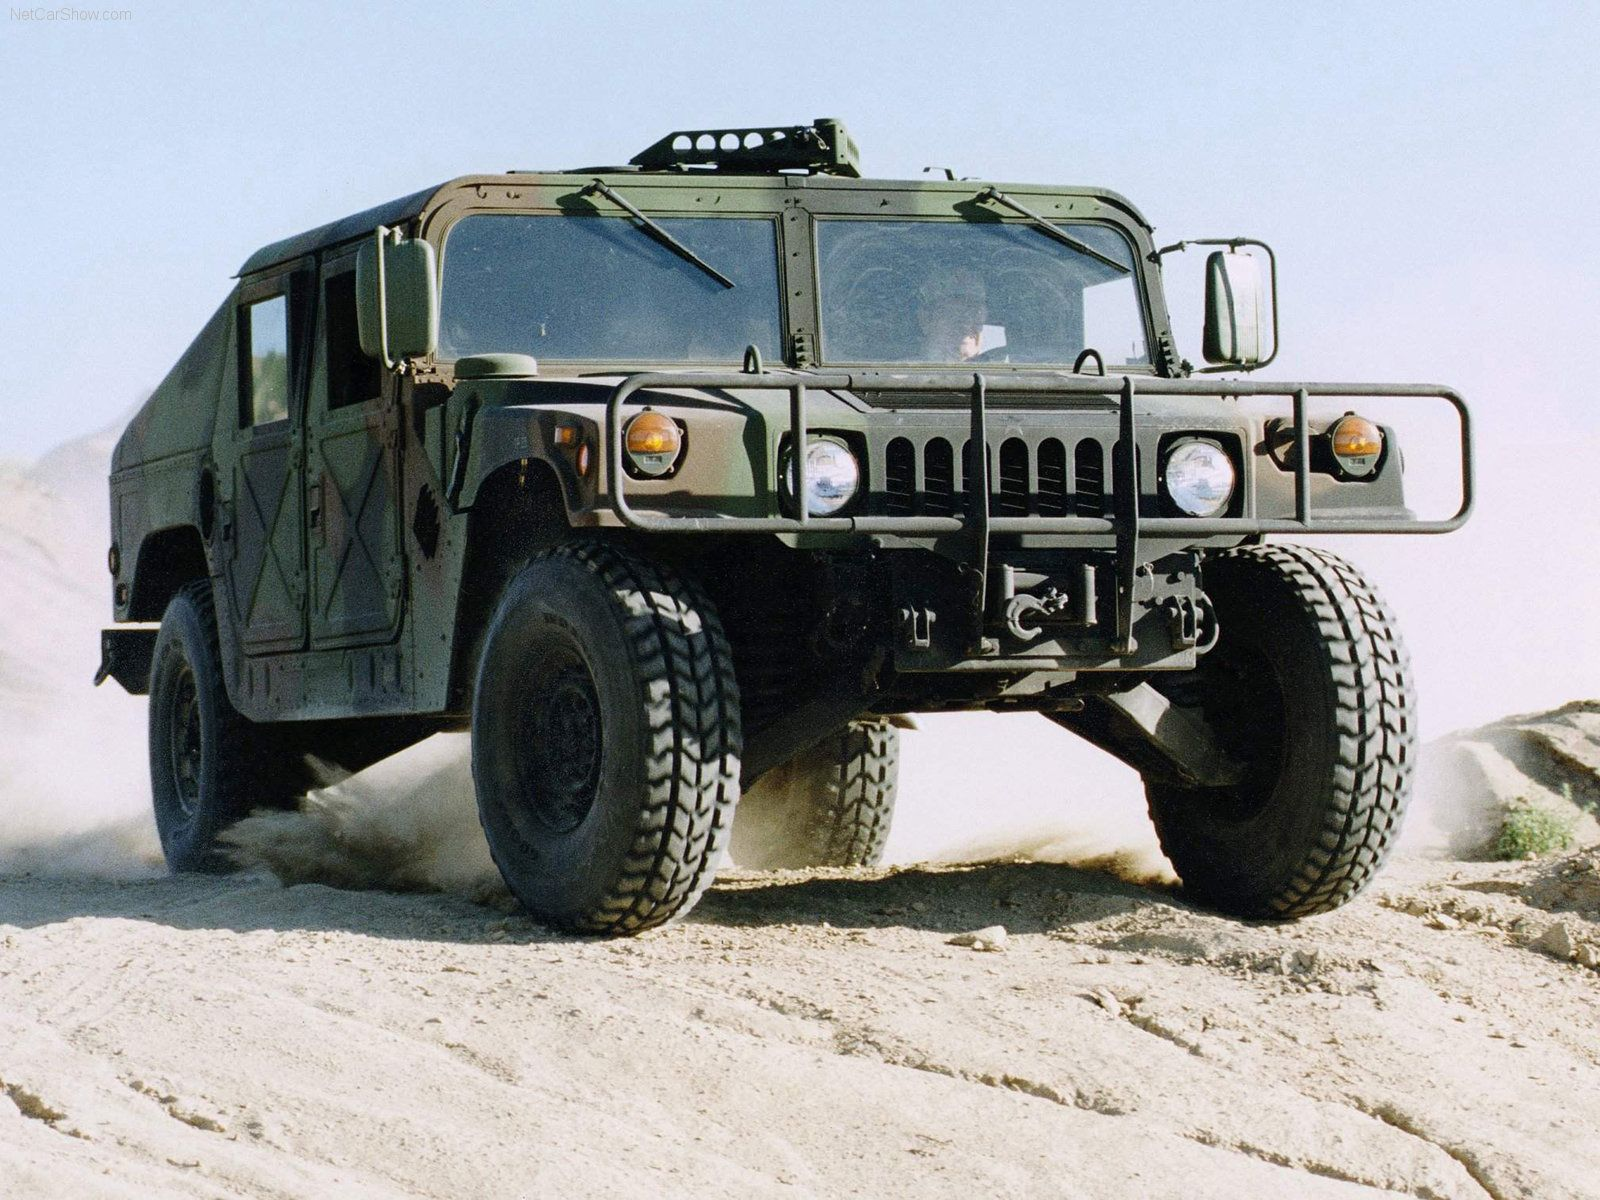 The perfect off road automobile 2003 hummer humvee military vehicle